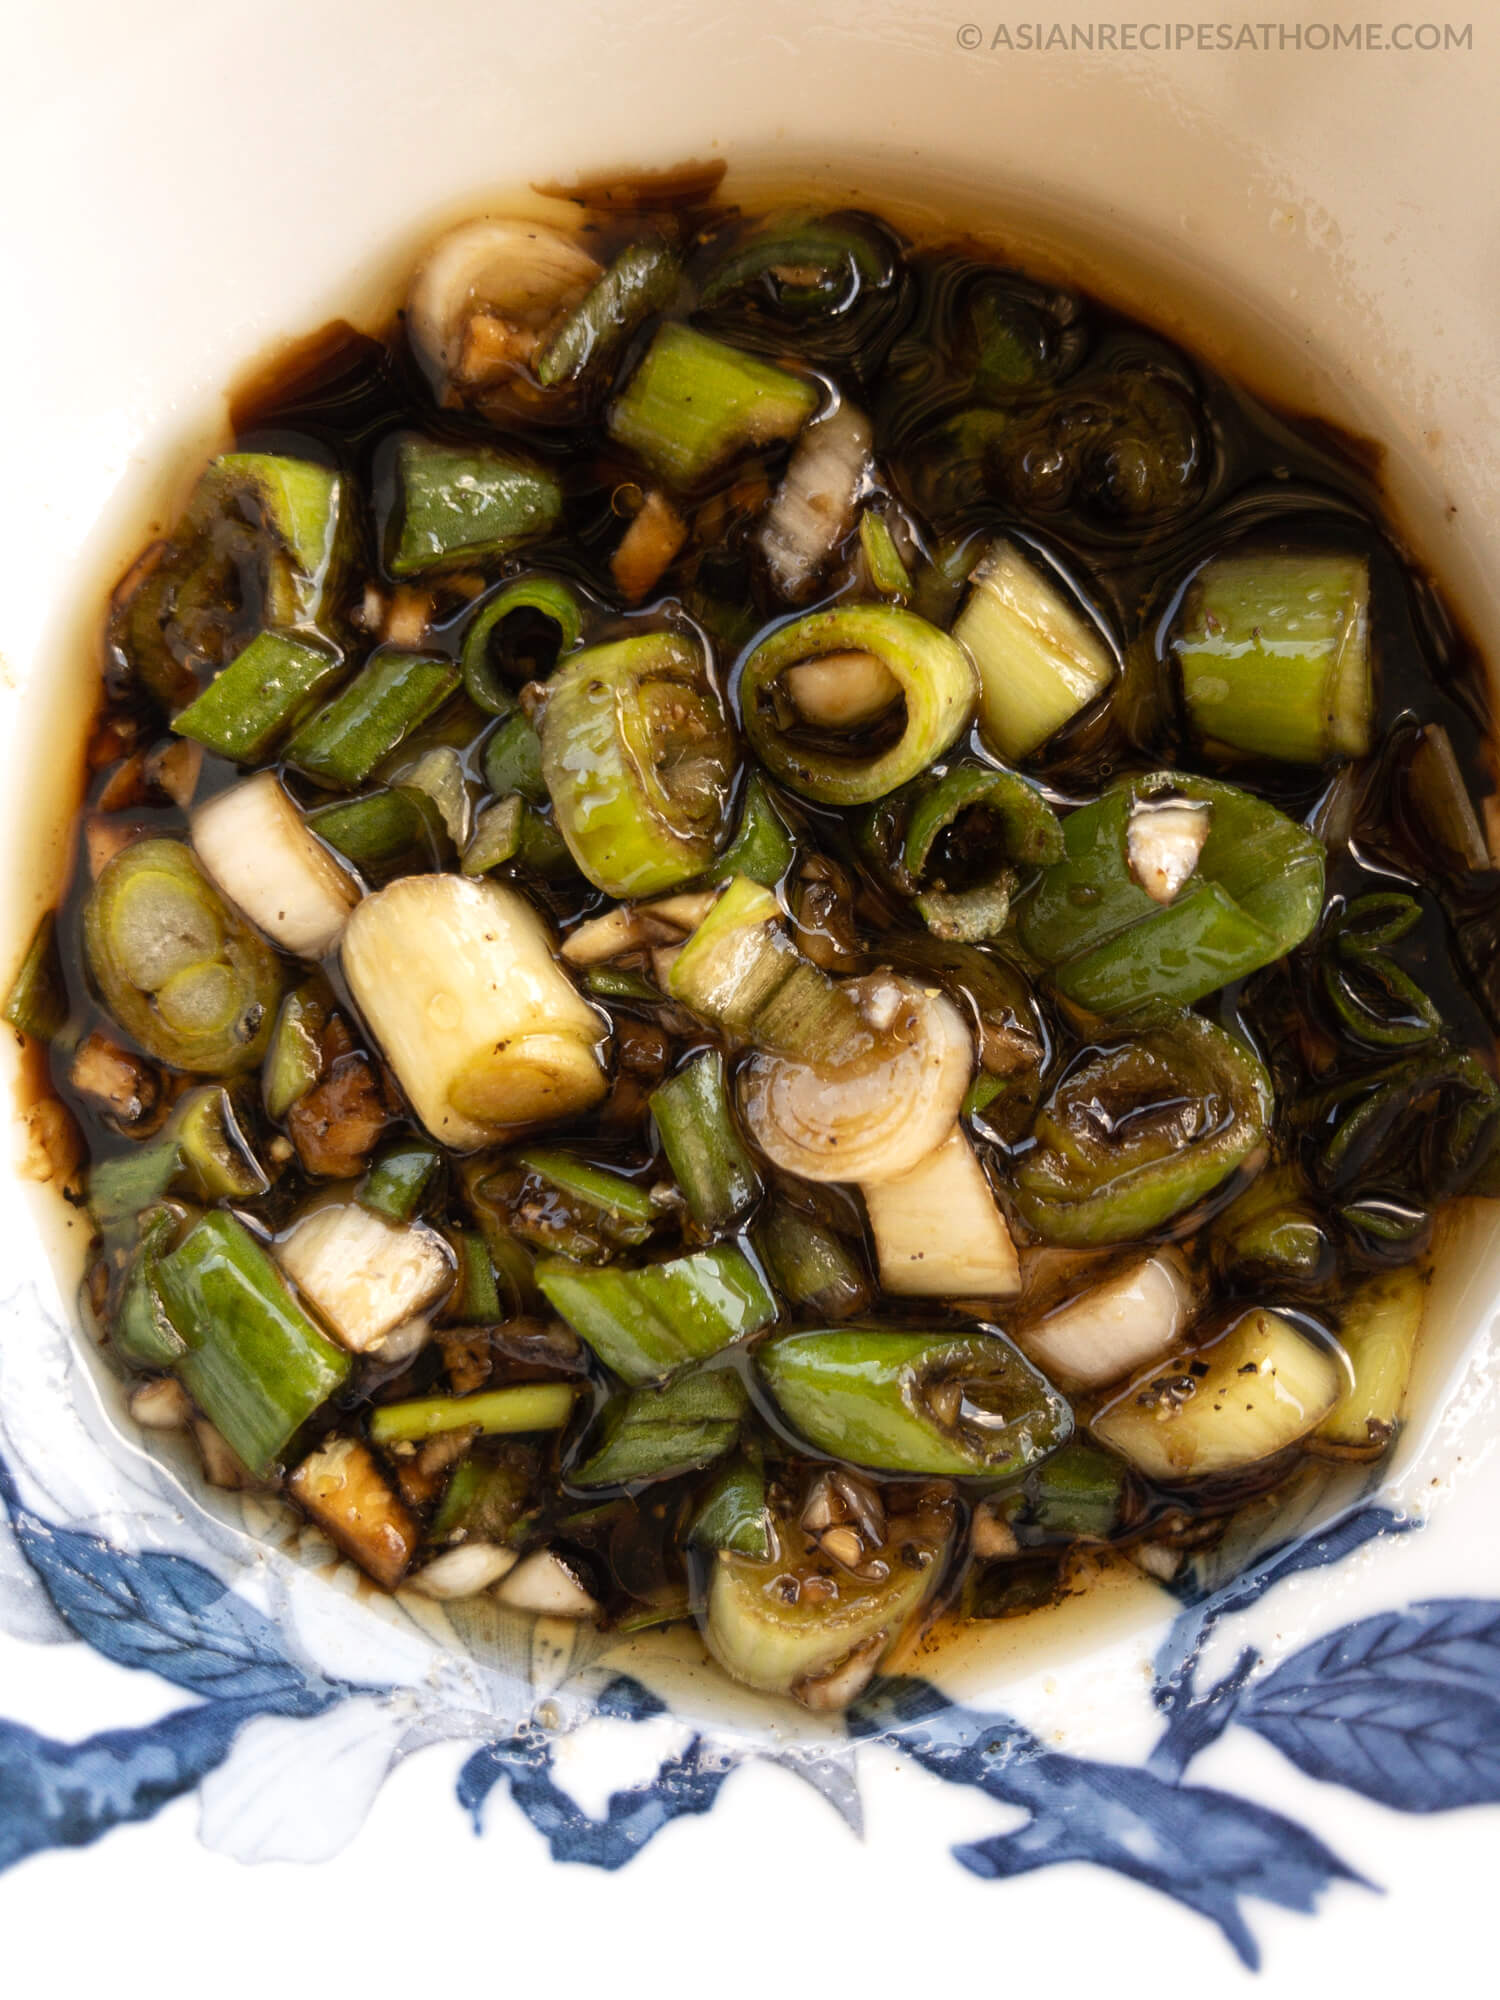 This sesame green onion (scallion) sauce recipe is so easy to make and delicious. It is versatile and has many uses.